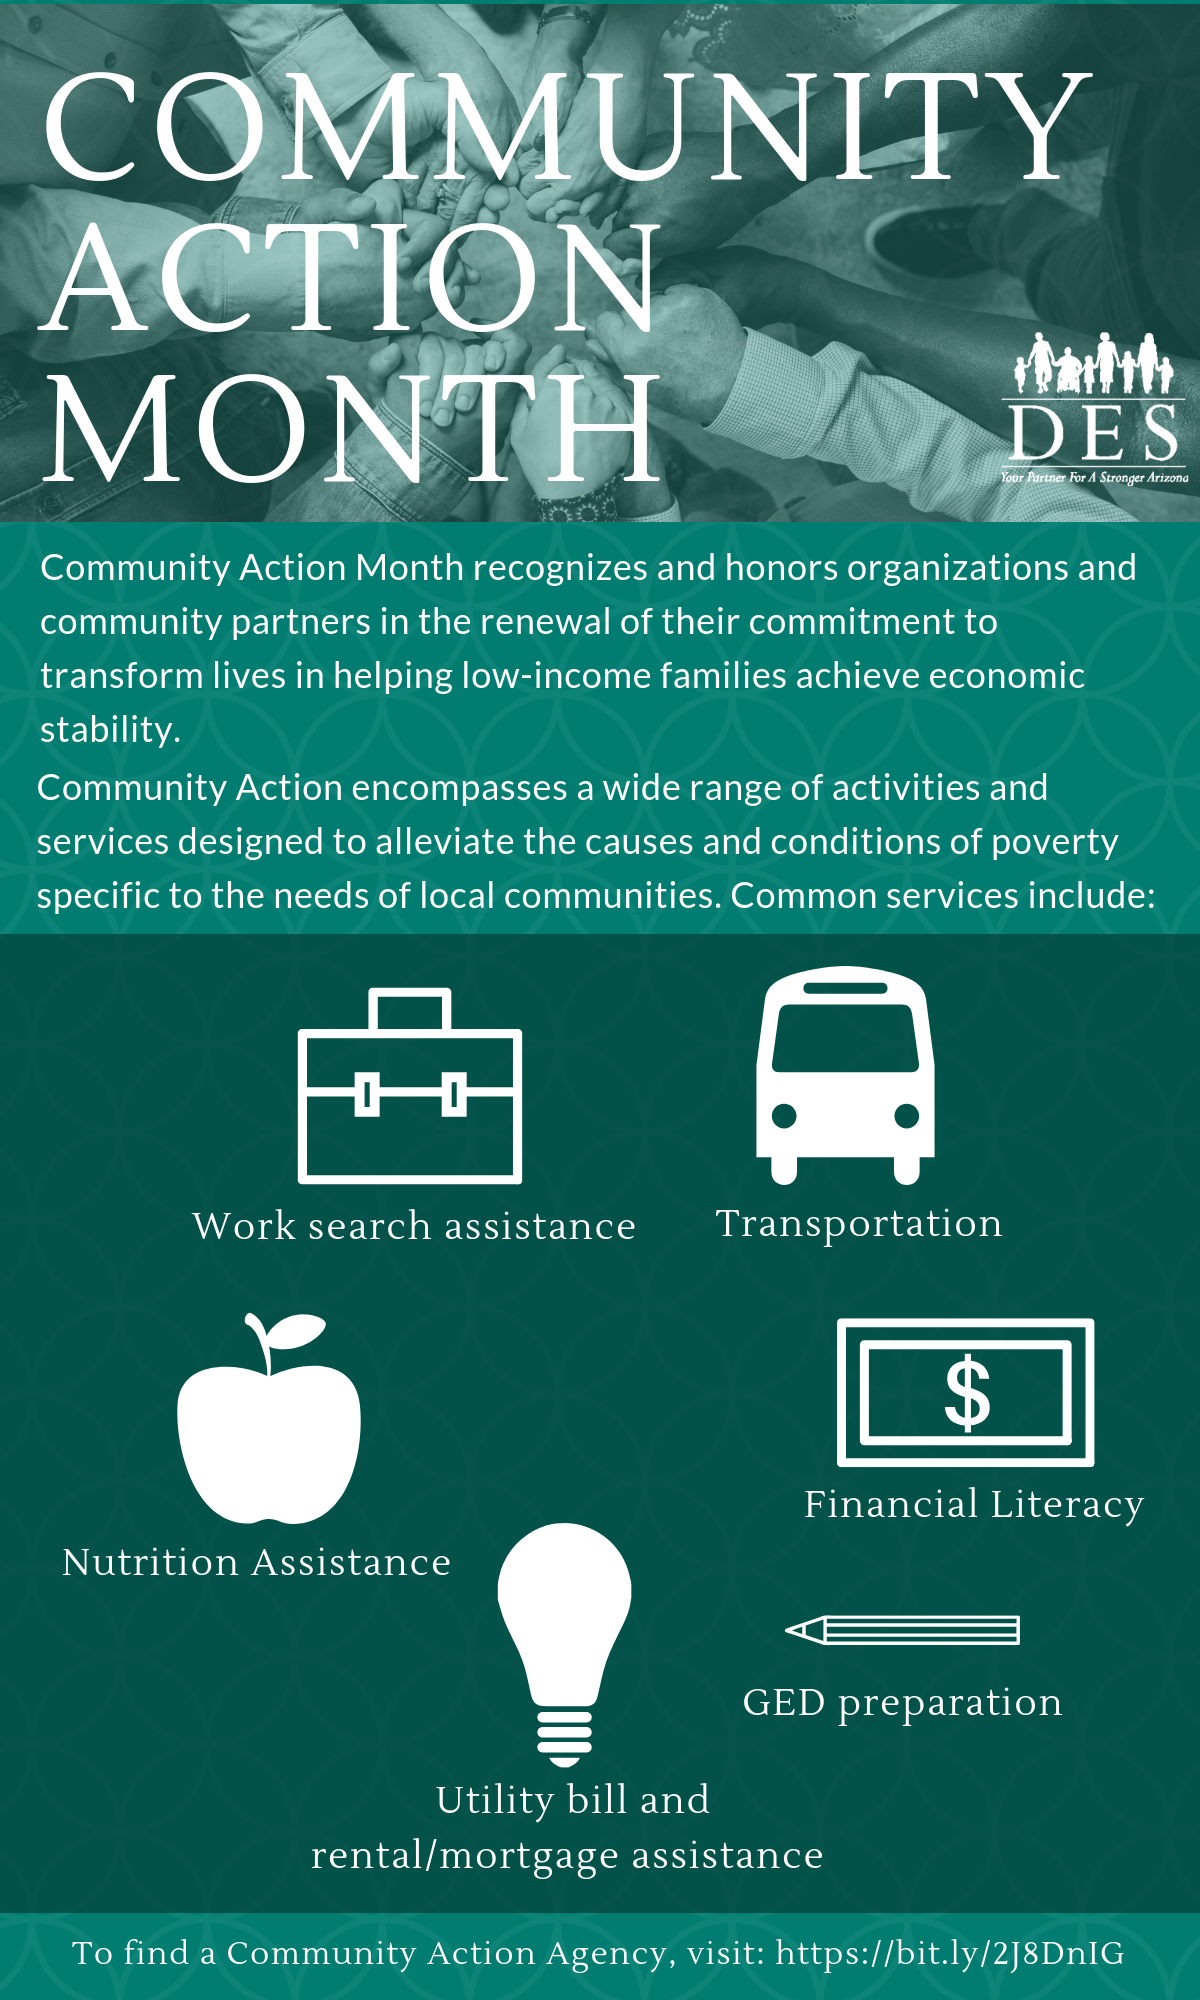 Facts and figures about Community Action Month